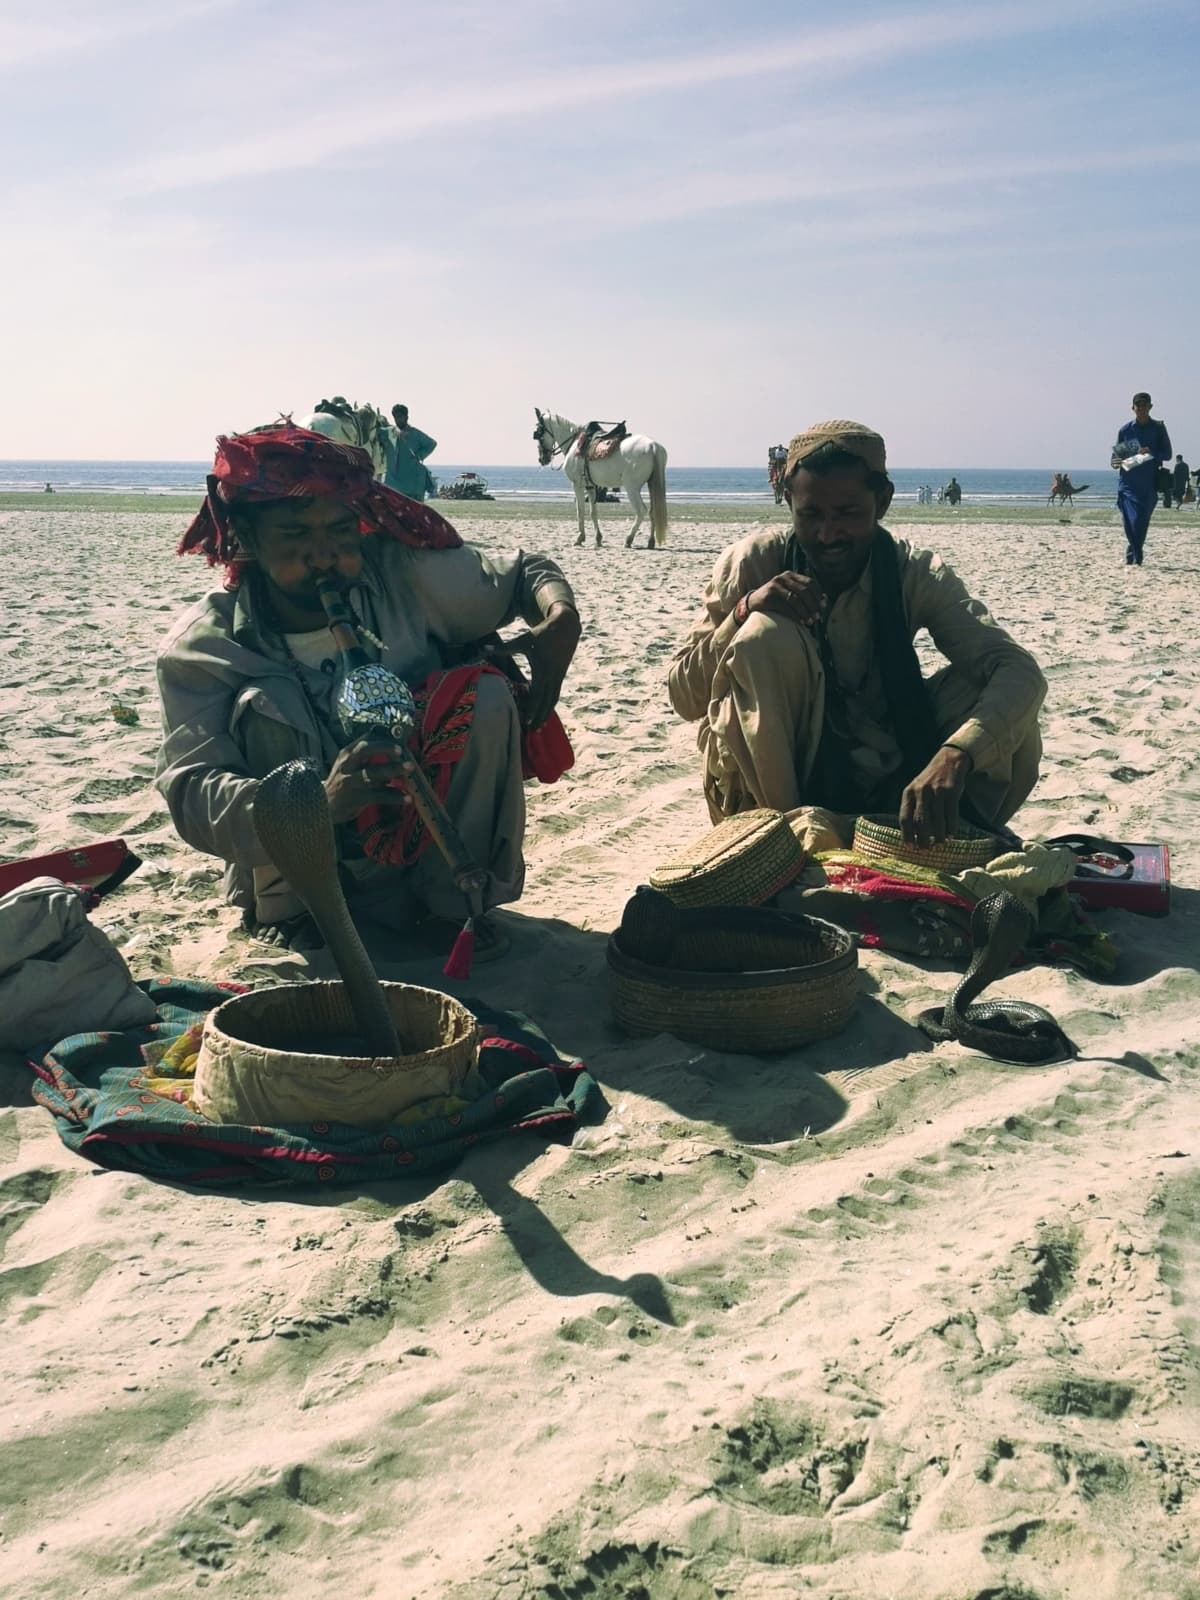 Snake-charmers at Sea View